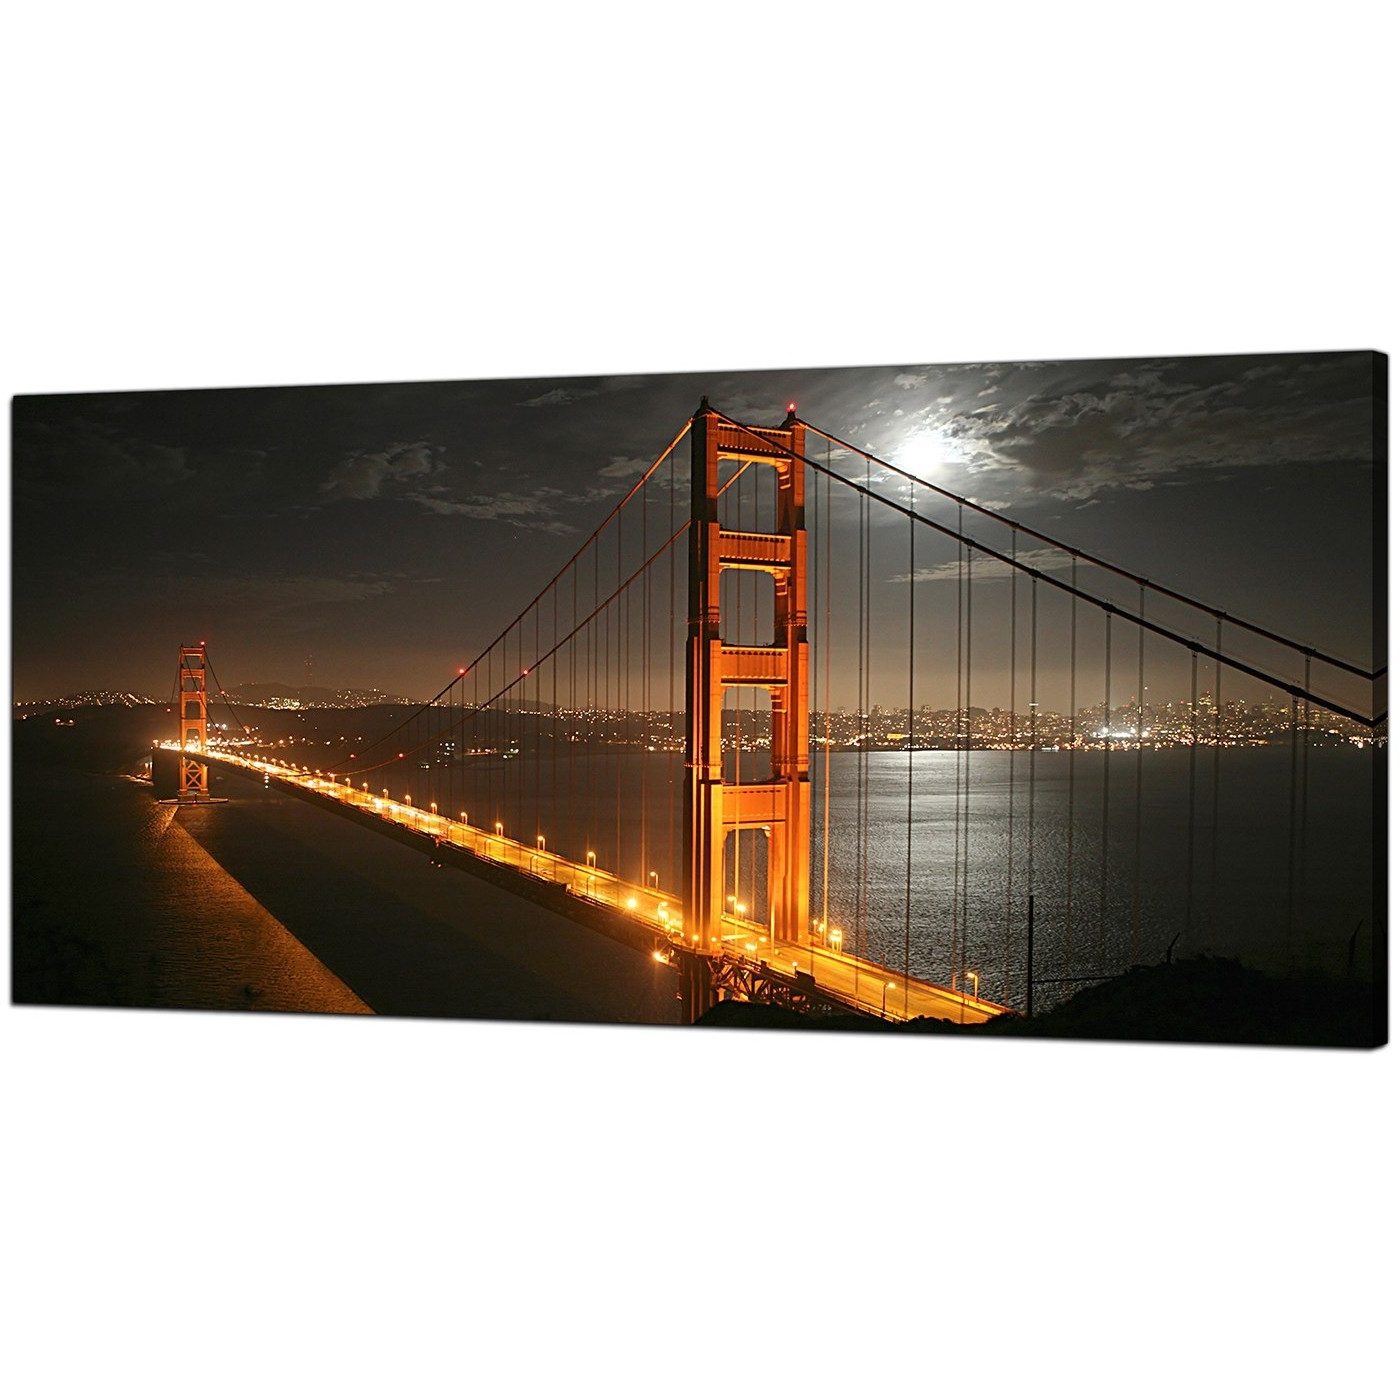 Well Liked Cheap Canvas Prints Of Night Time San Francisco For Your Dining Room In San Francisco Wall Art (View 15 of 20)